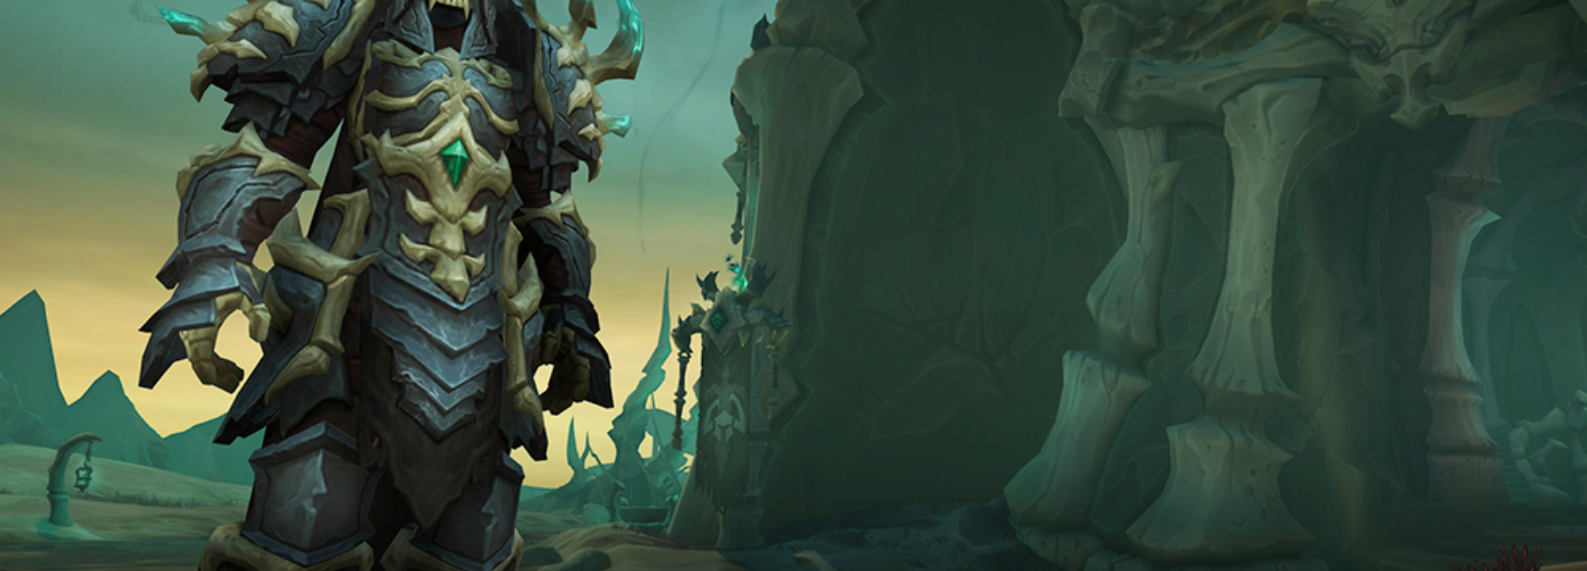 Blizzard Posts News and Development Update For World of Warcraft